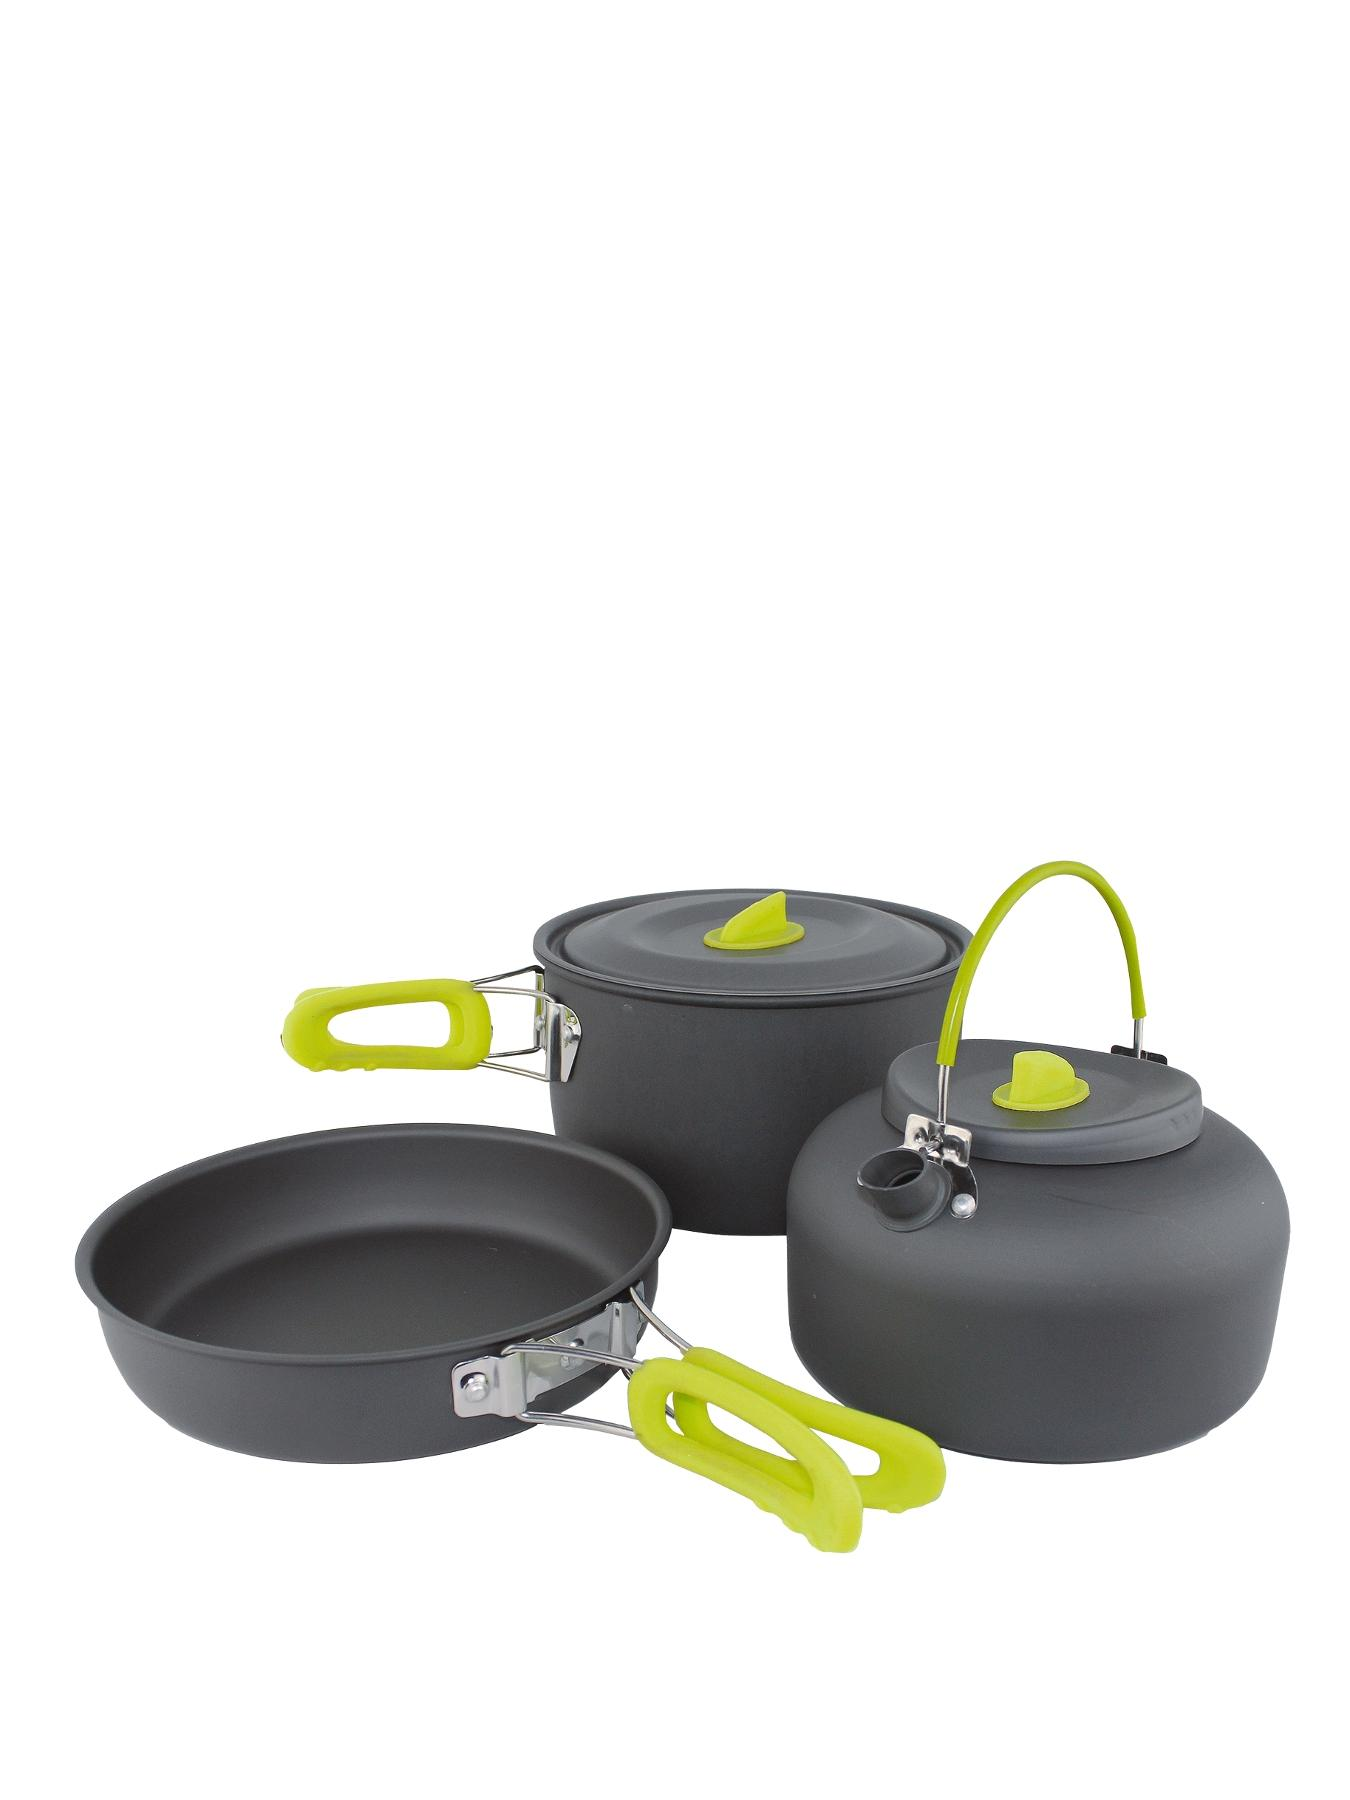 Snowdonia Cook Set